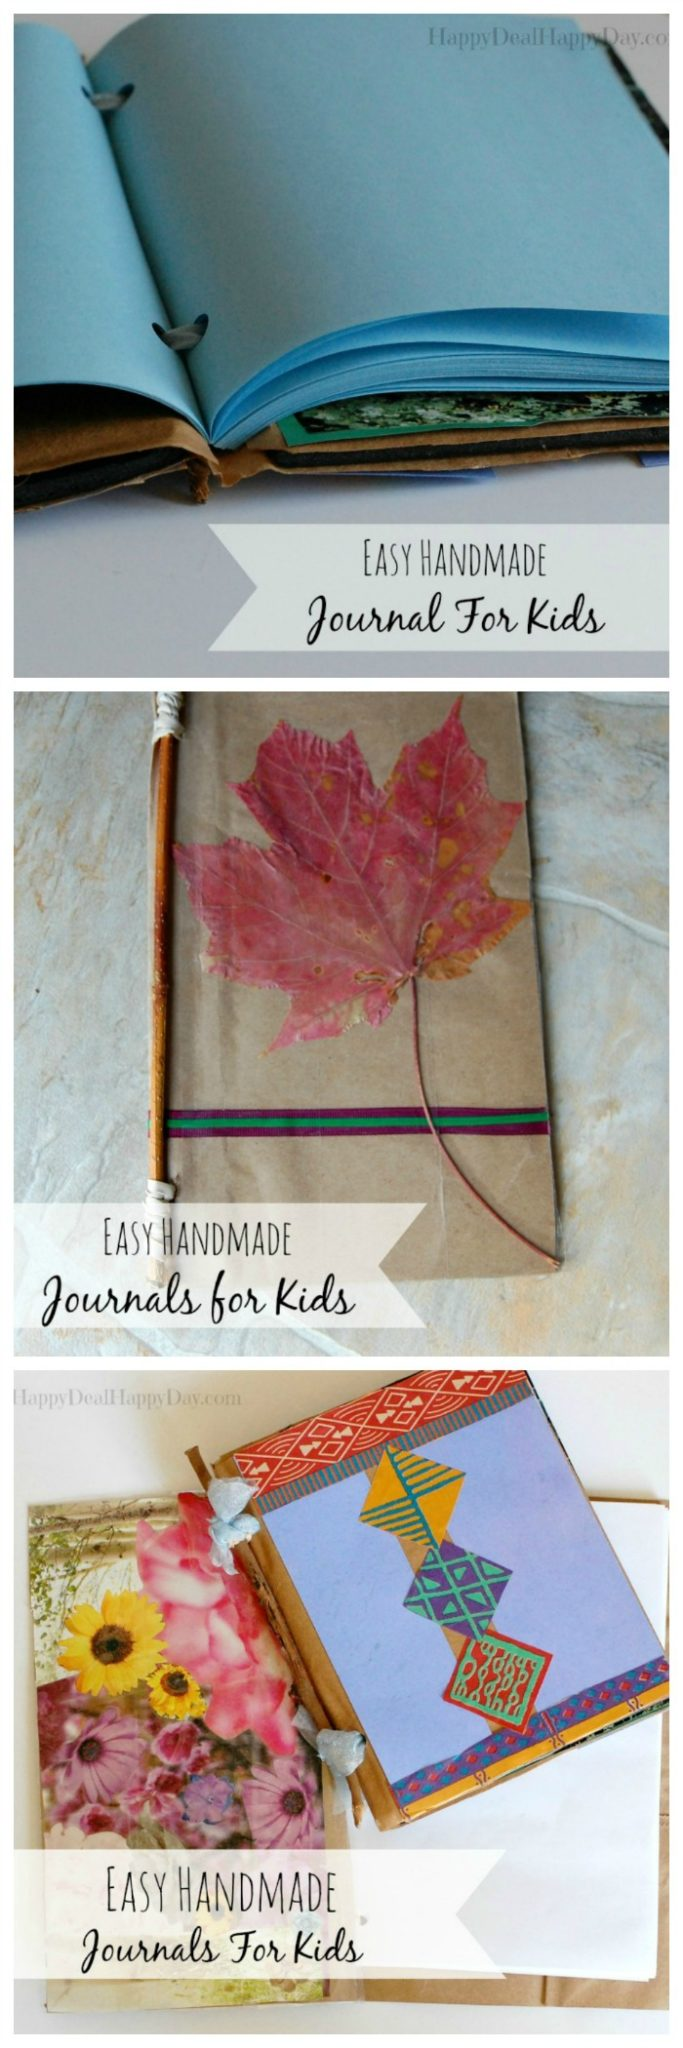 These handmade journals for kids would make fantastic gifts and are so easy to make with this step by step tutorial.